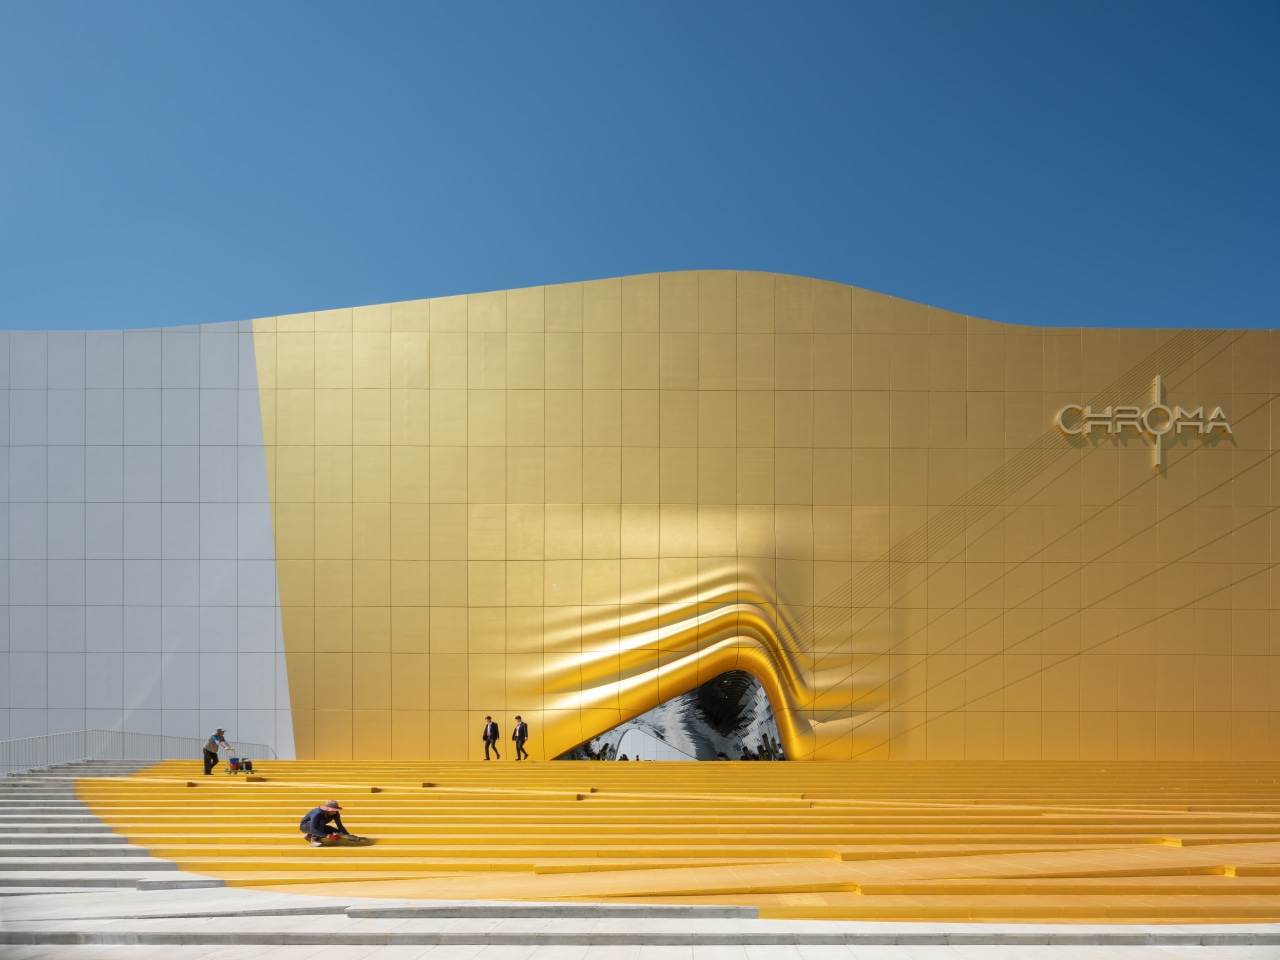 0994 - architecture | daylighting | daytime | architecture, daylighting, daytime, facade, line, sky, sunlight, wall, yellow, orange